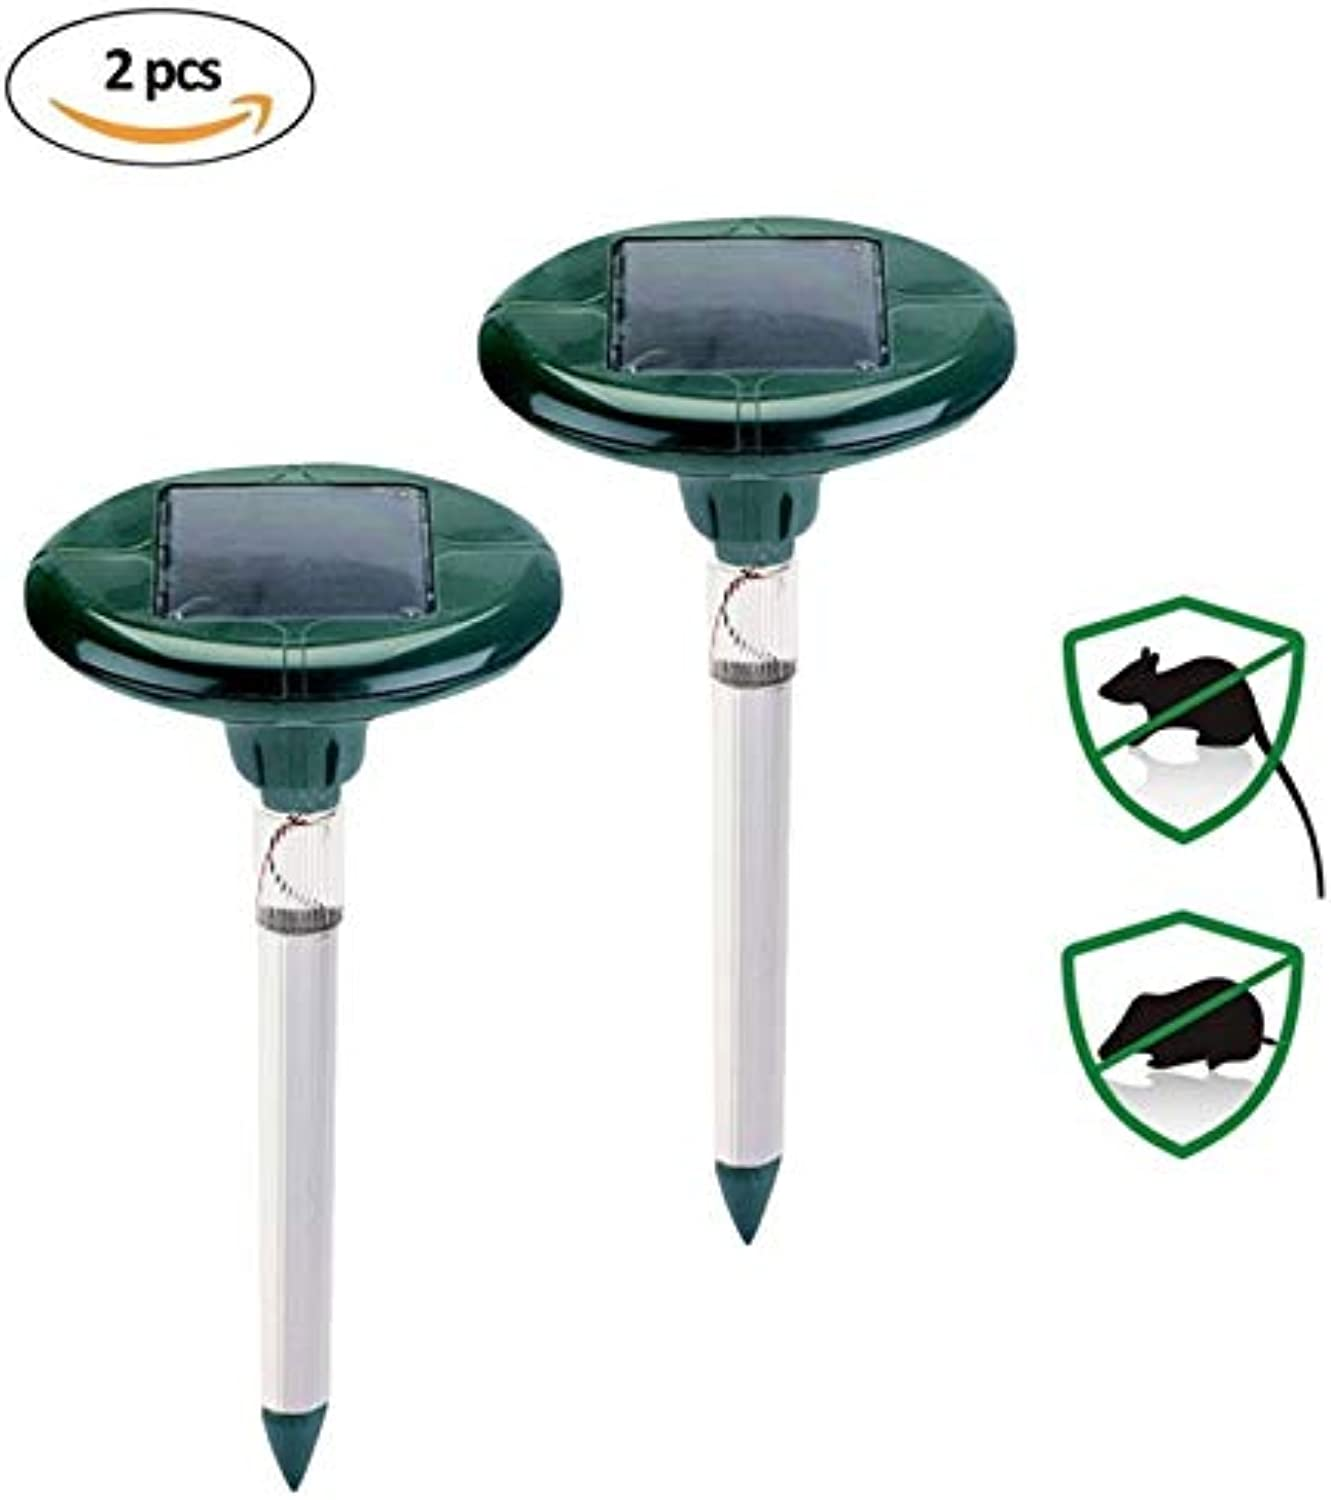 New 2pcs Solar Powered Mole Repeller with LED - Sonic Pest Repellent Stake Scares Away Snakes Moles Voles Gophers & Rats Garden